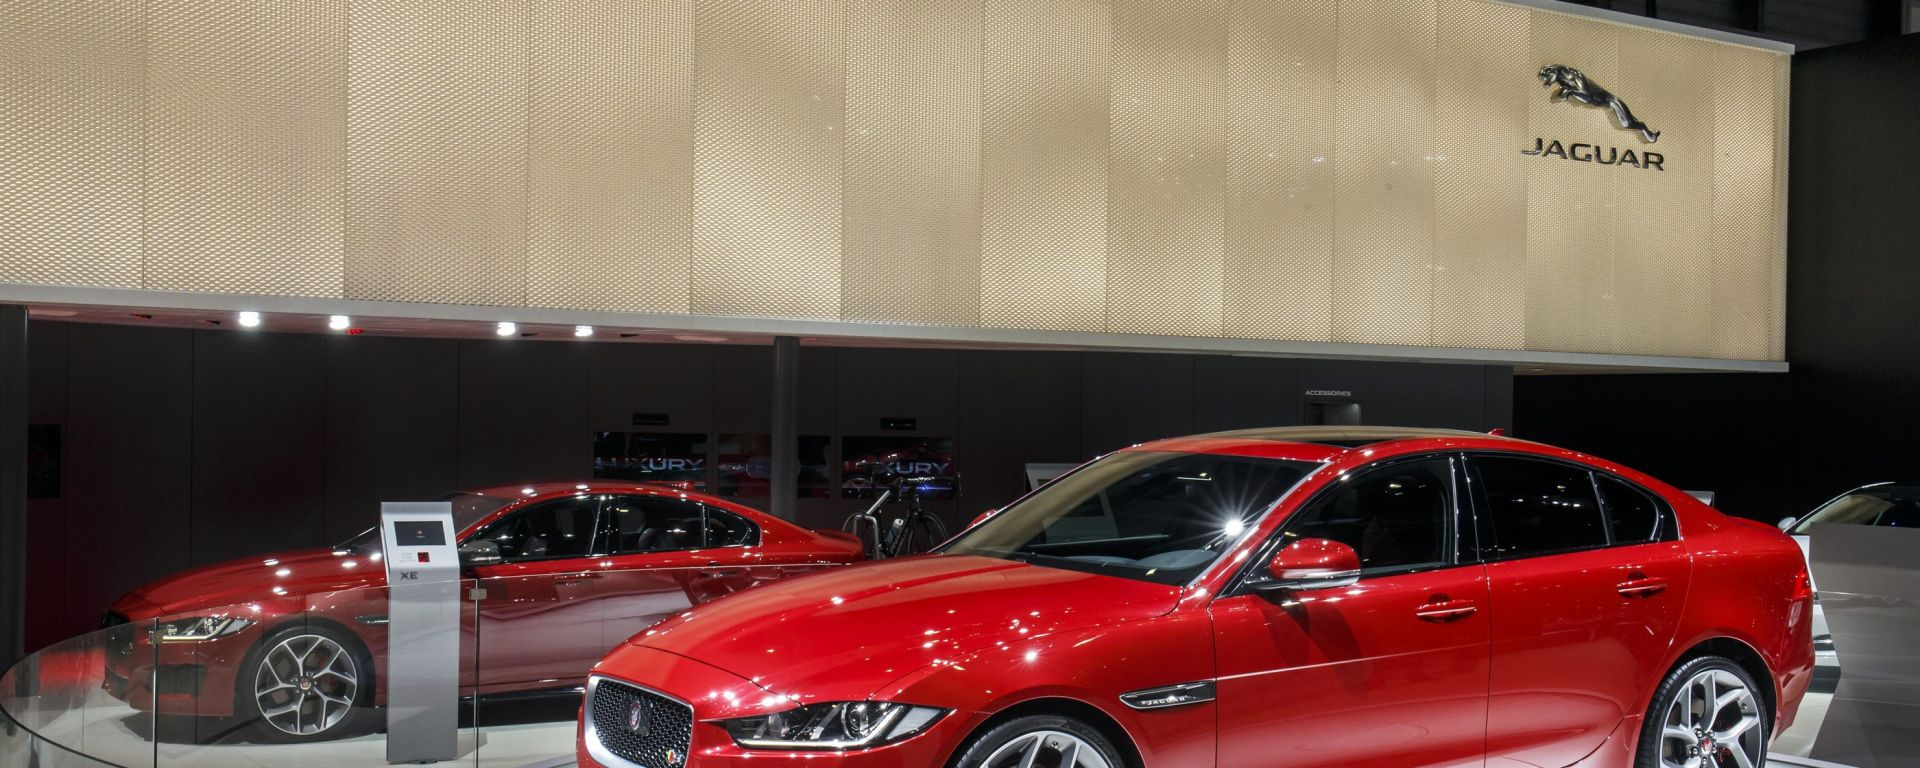 Jaguar XE: il video dallo stand